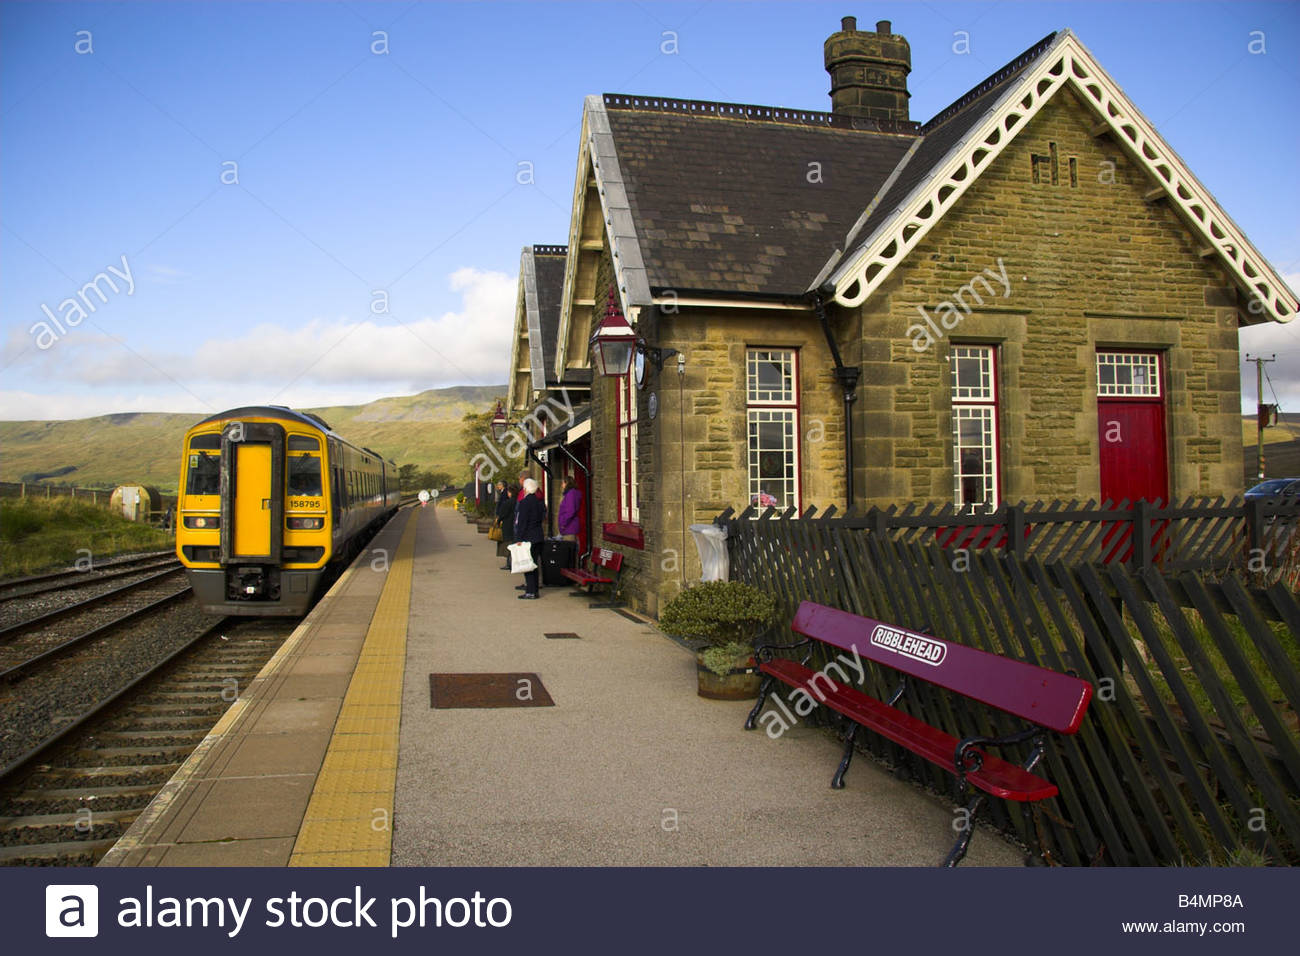 A Carlisle to Leeds train arrives at Ribblehead Station, North Yorkshire, England. - Stock Image